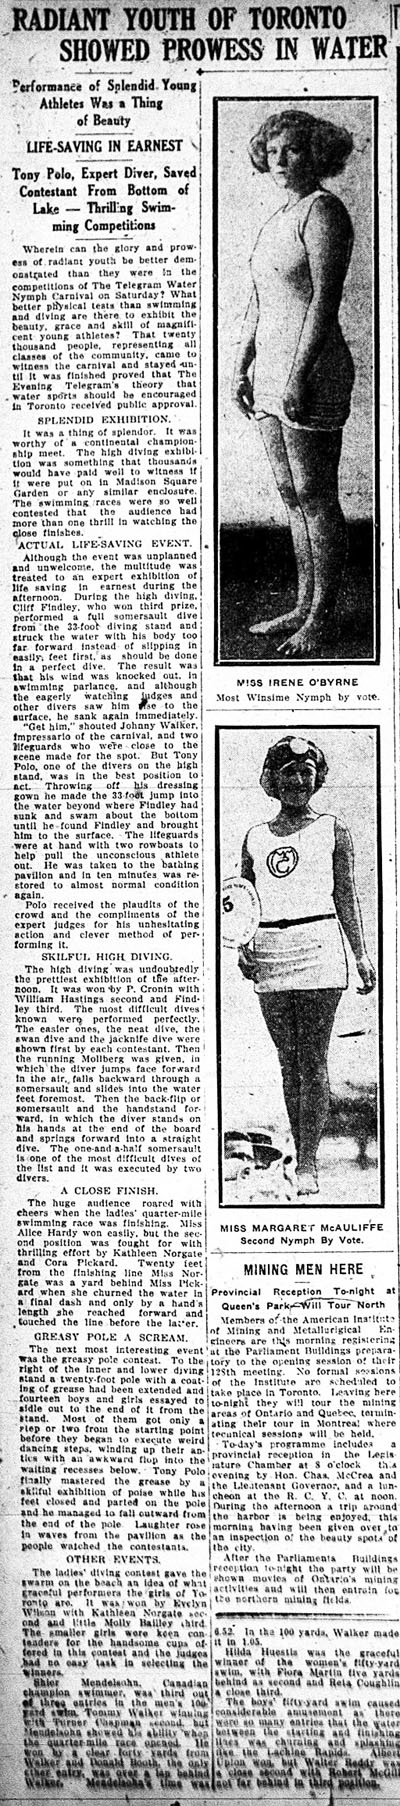 tely 1923-08-20 water nymph carnival 1 pt 1